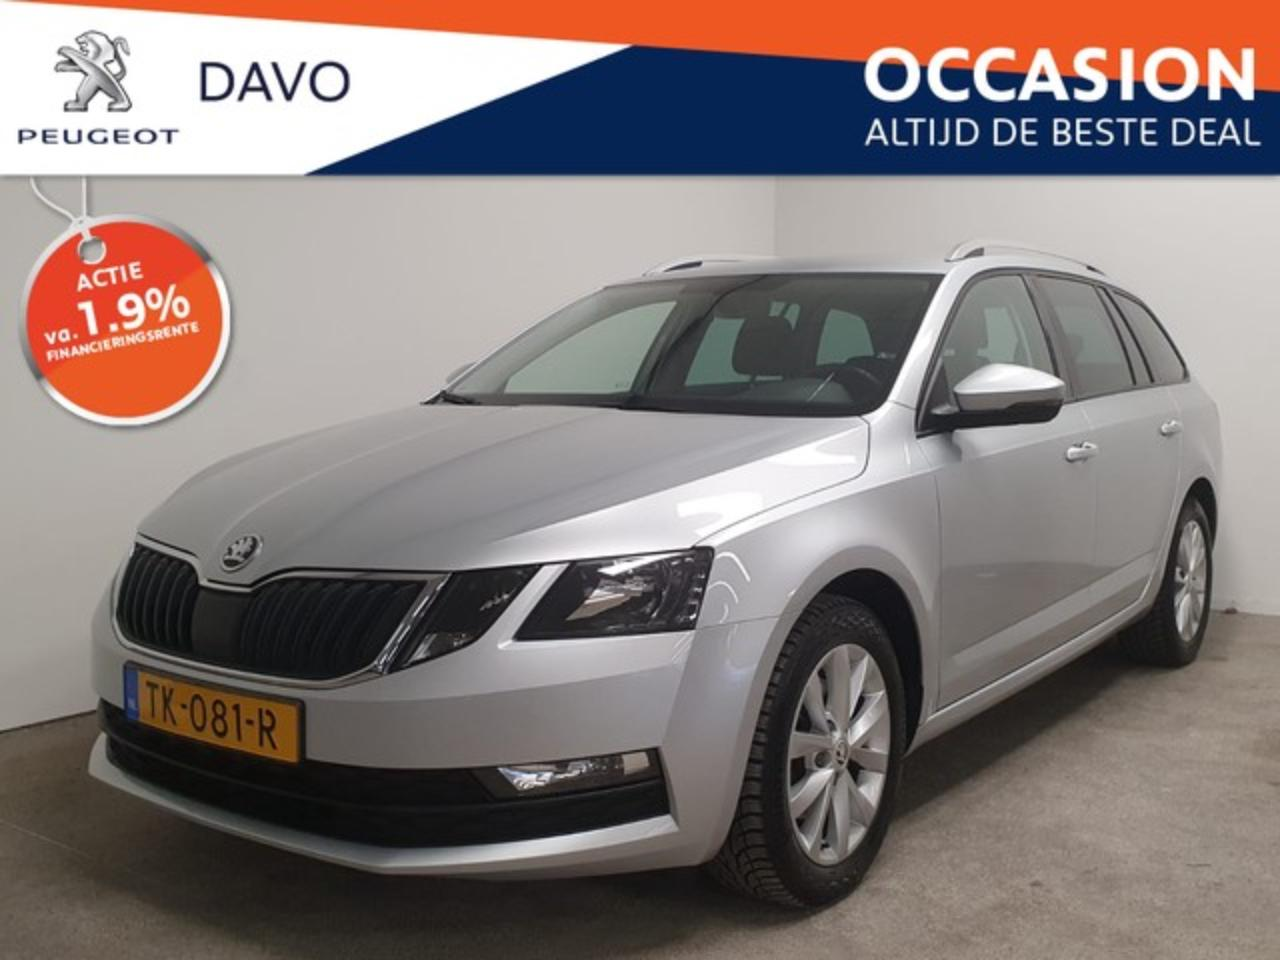 Skoda Octavia Combi 1.0 116 PK Greentech Ambition Business ! RUI